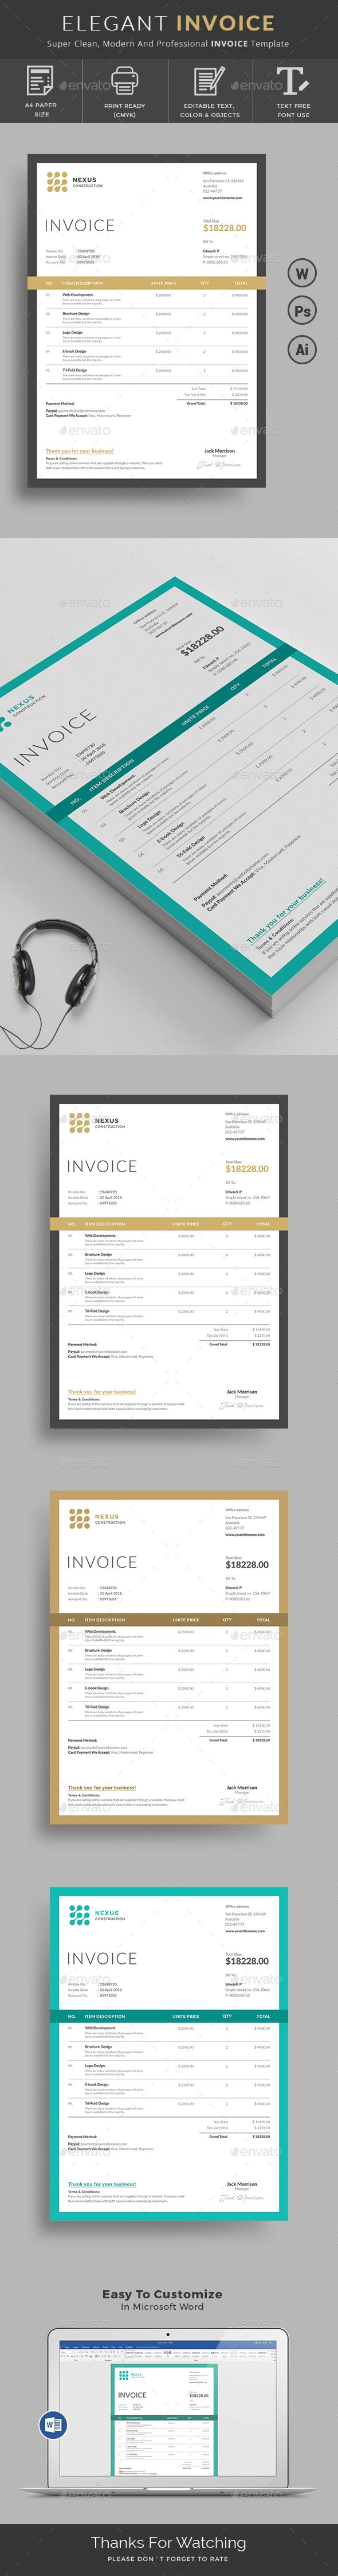 How To Make A Invoice In Excel Unique Invoice  Template Brand Identity And Print Templates